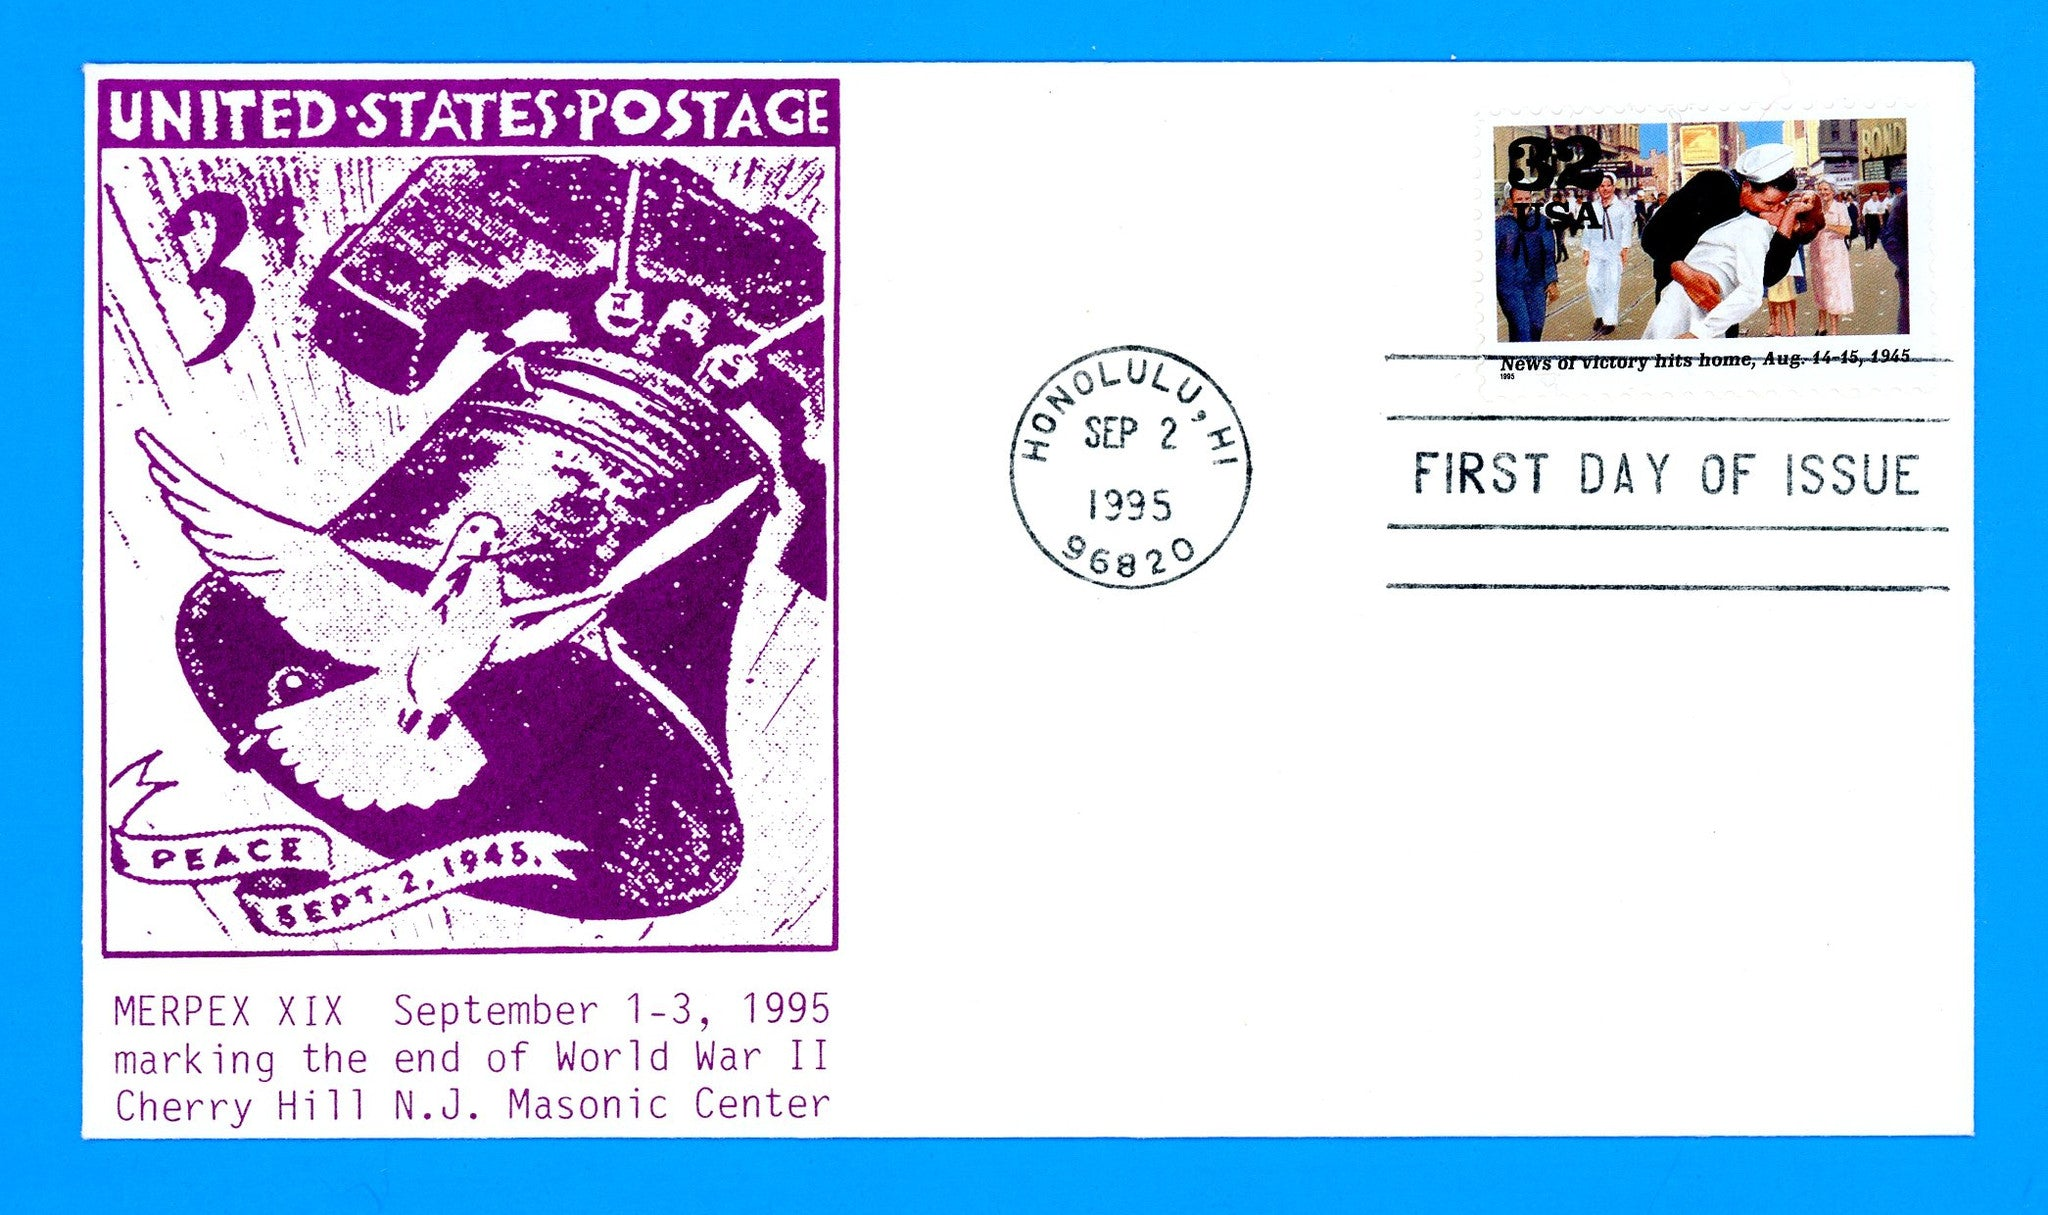 Scott 2981i News of Victory, World War II First Day Cover First Day Cover by Cherry Hill Masonic Center